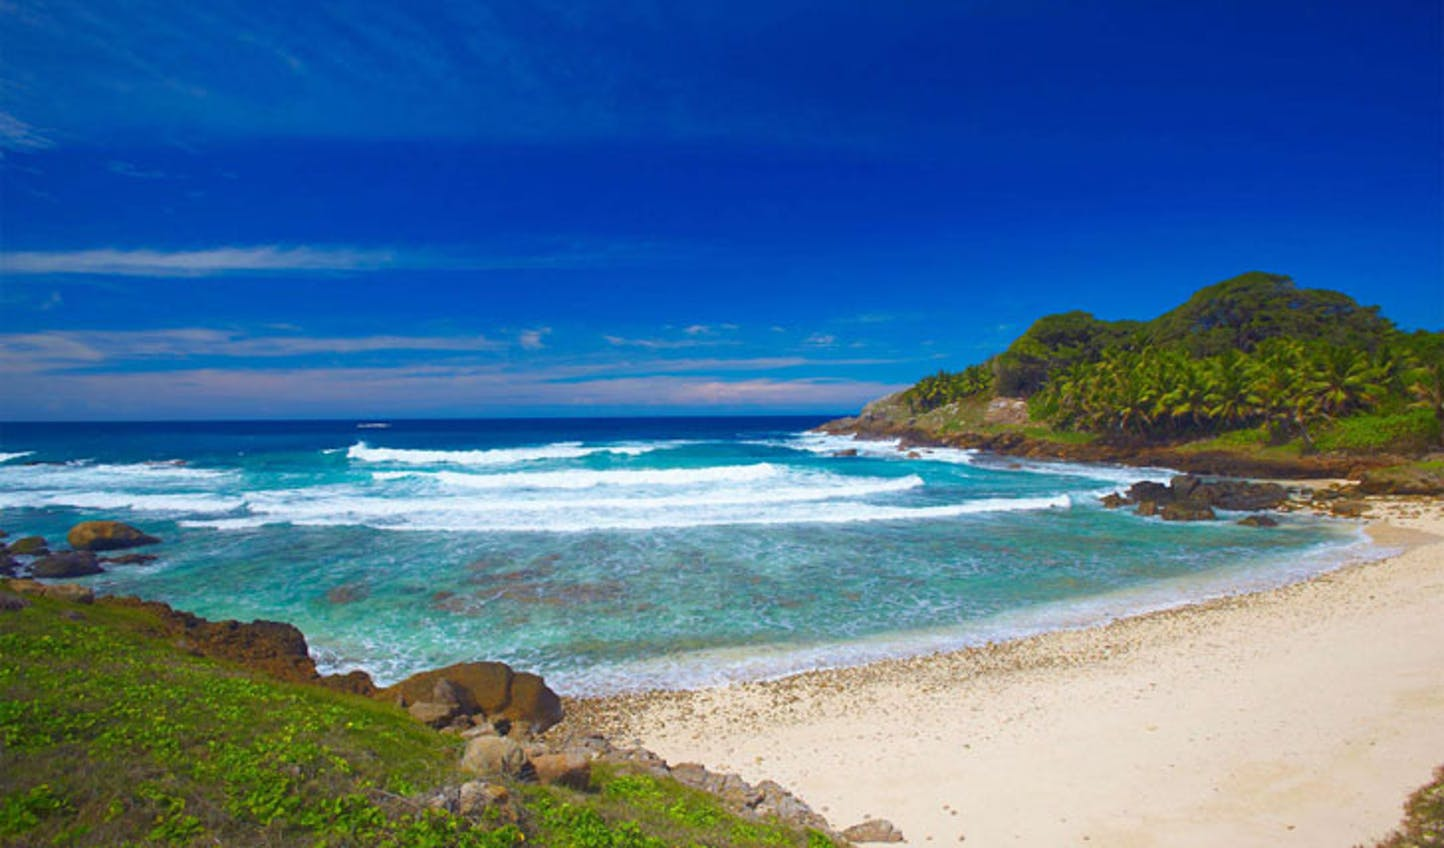 Luxury Holiday to the Seychelles